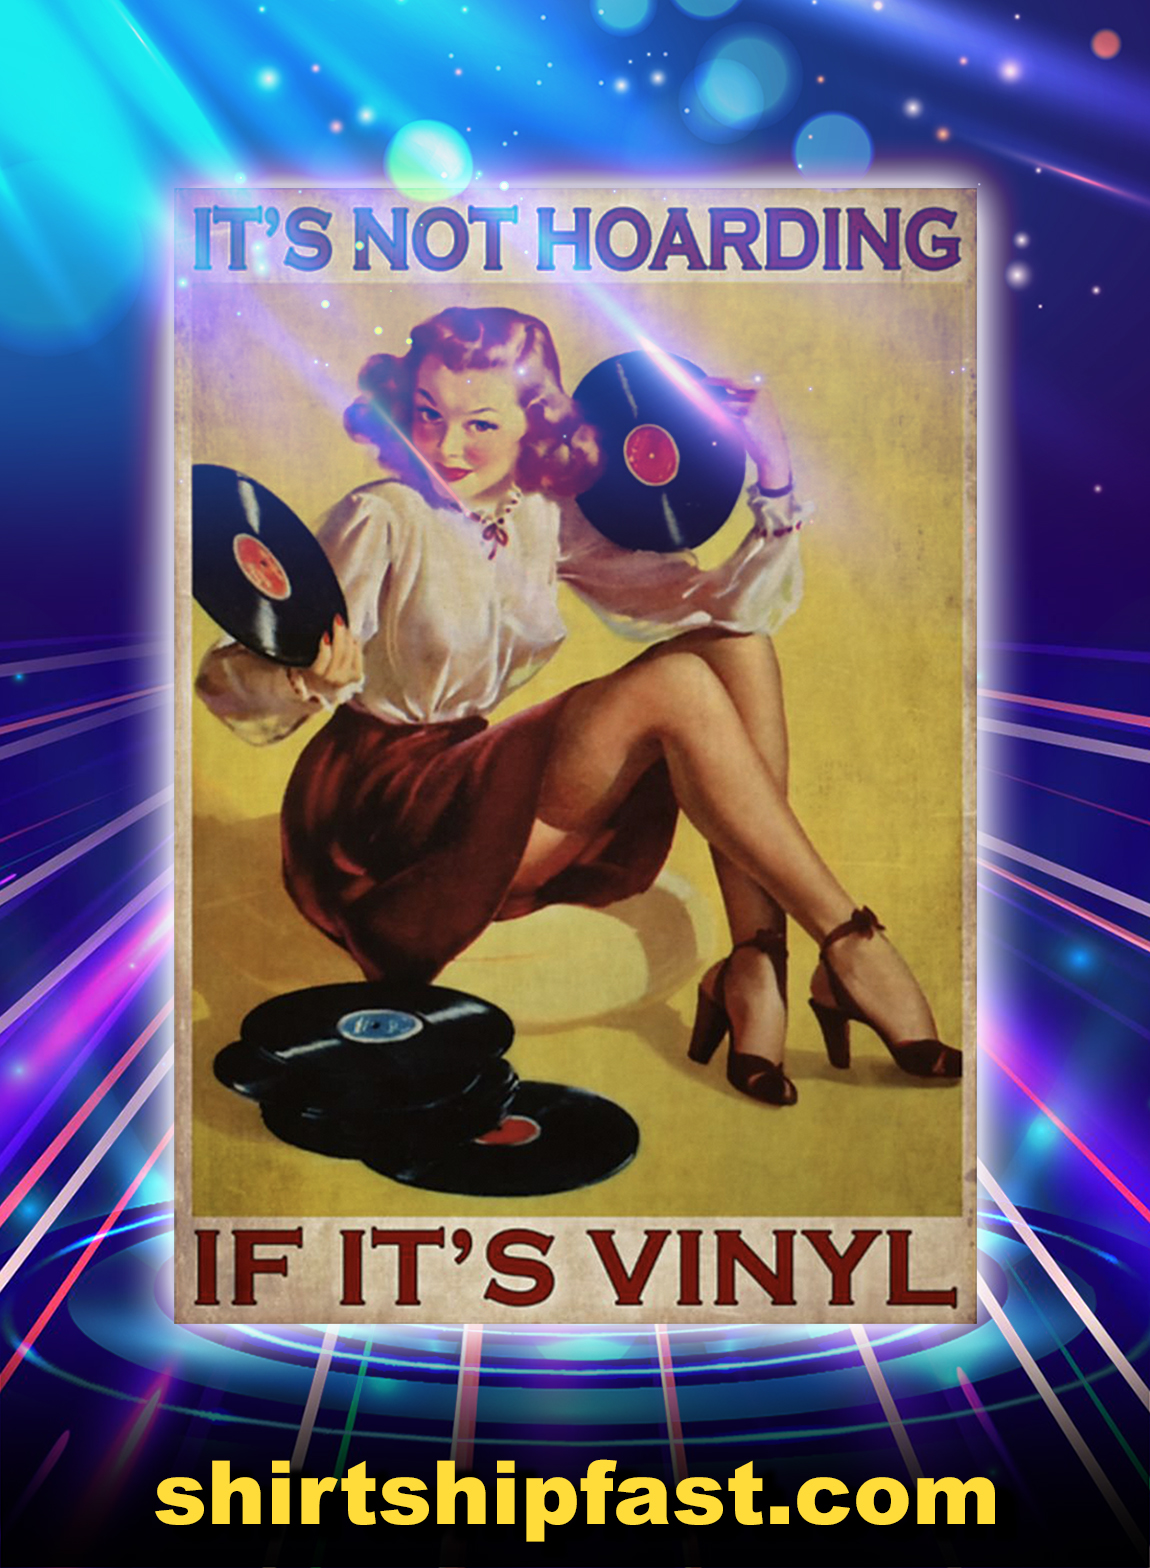 Blonde girl It's not hoarding if it's vinyl poster - A3